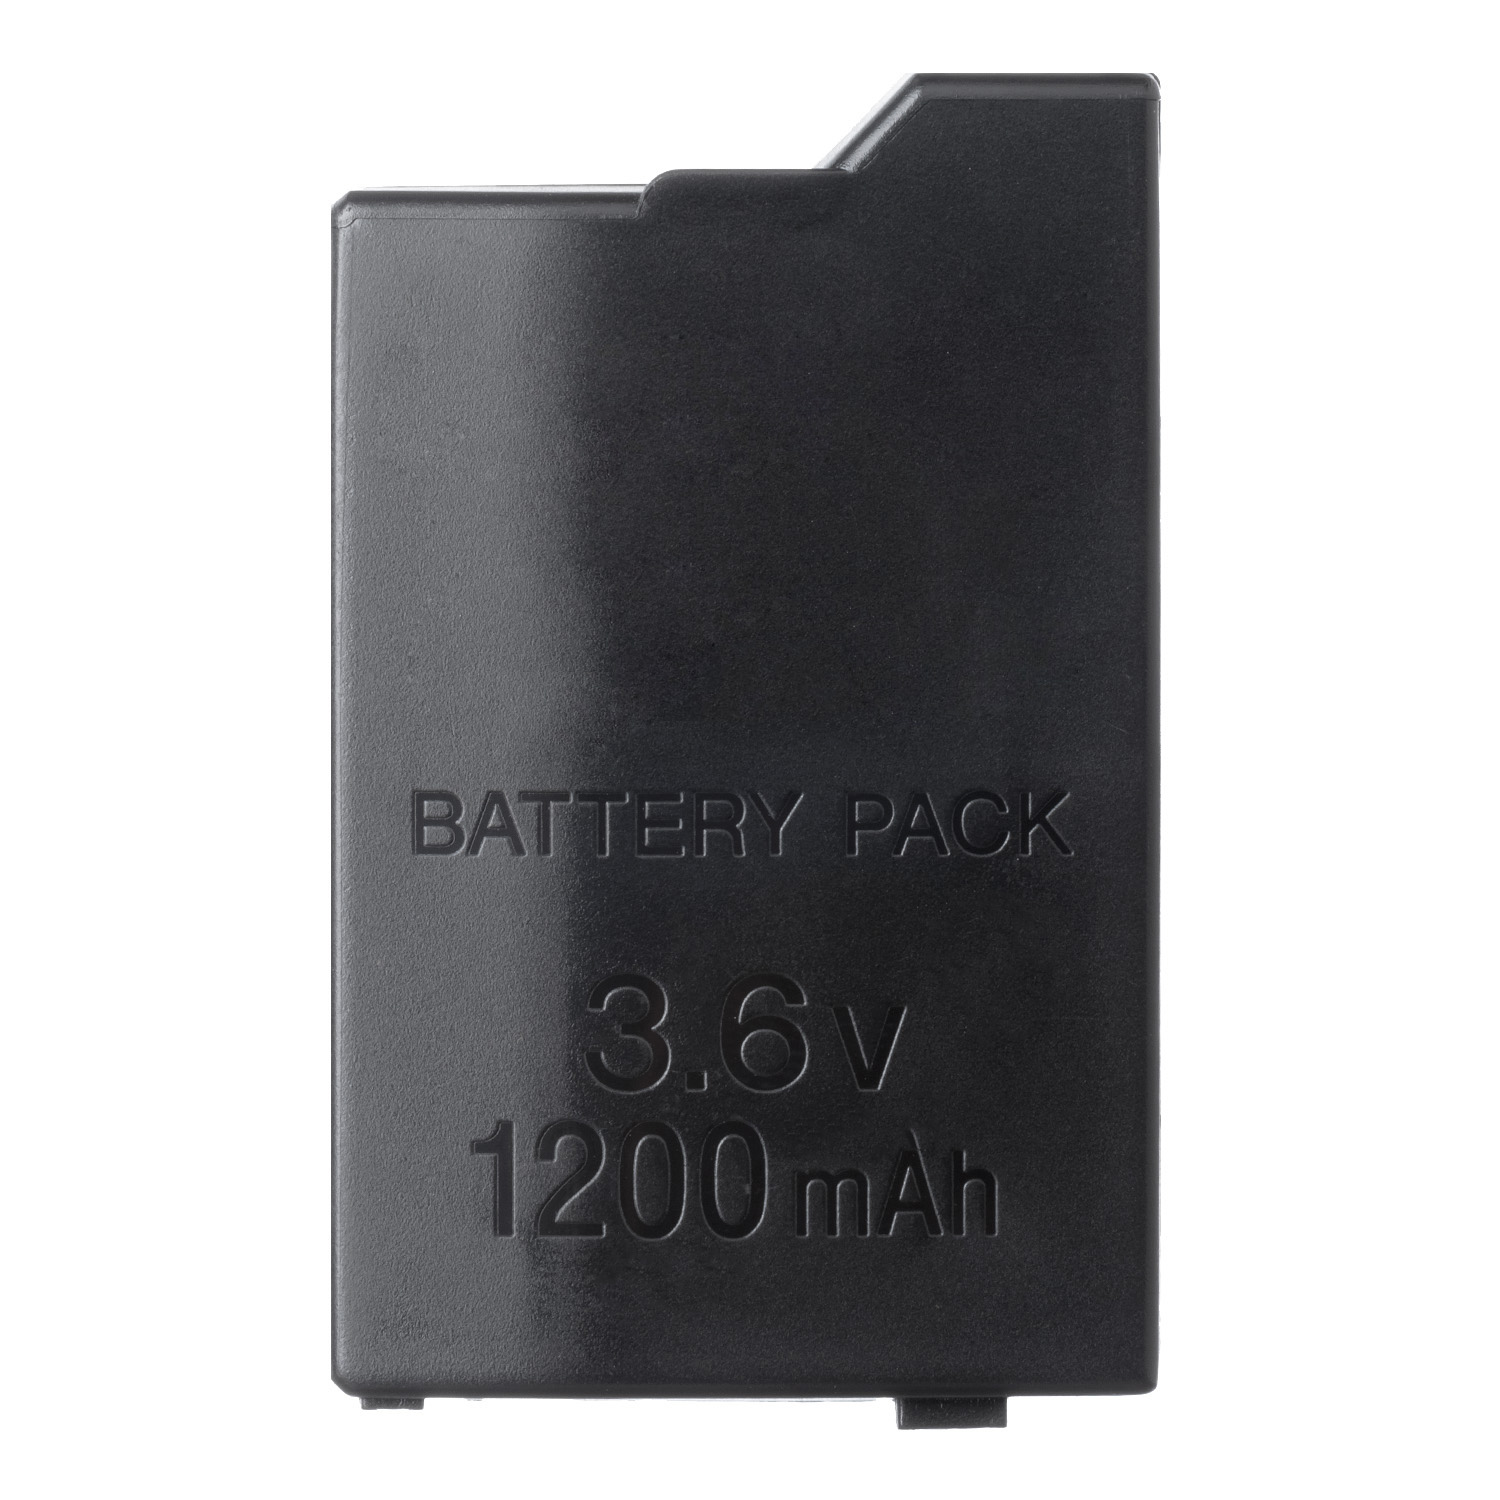 OSTENT 1200mAh 3.6V Lithium Ion Rechargeable Battery Pack Replacement for Sony PSP 2000/3000 PSP-S110 Console image